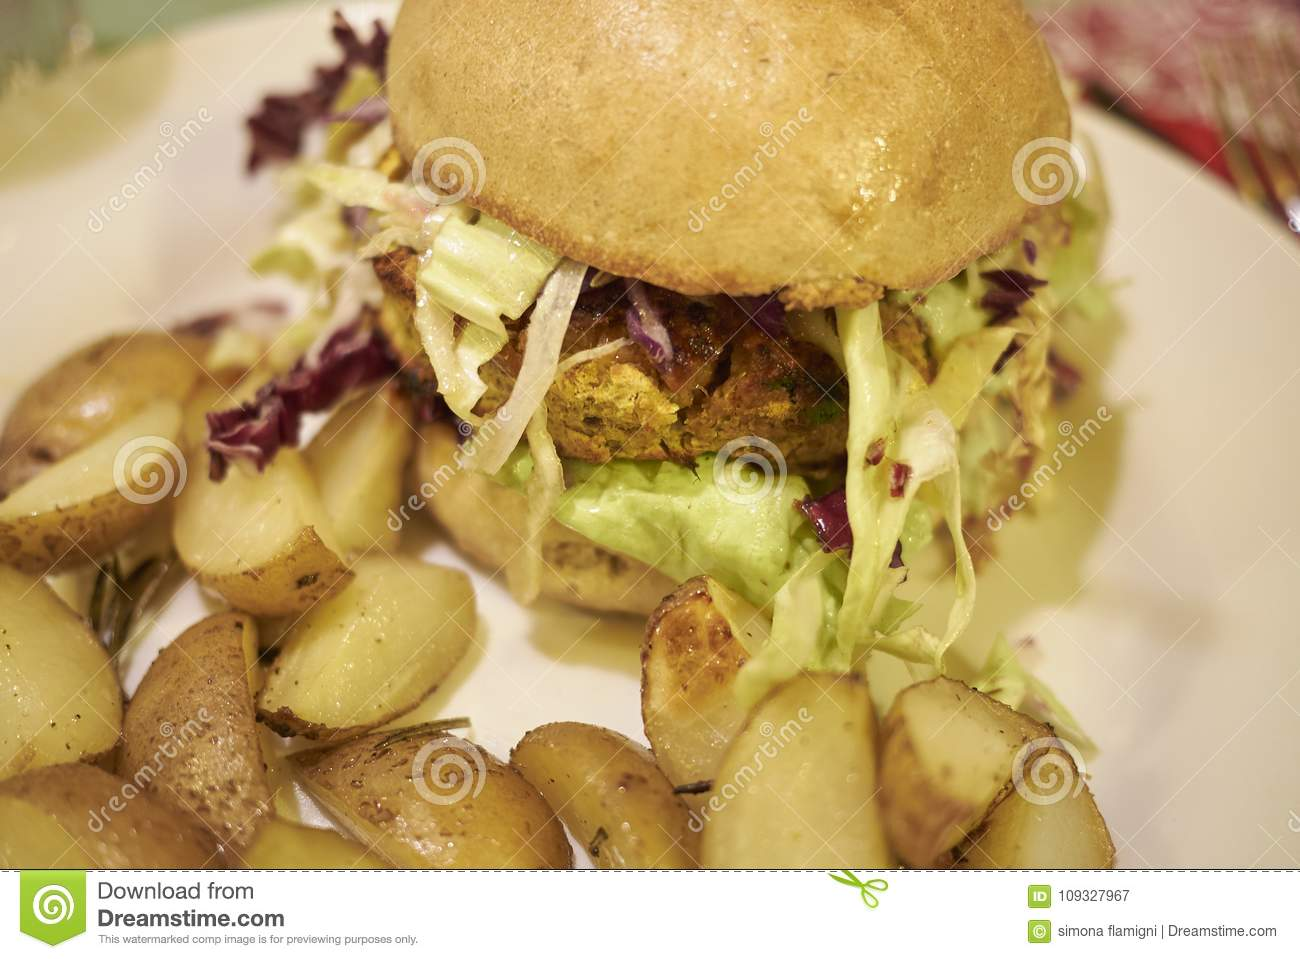 Vegetarian burger with roasted potatoes